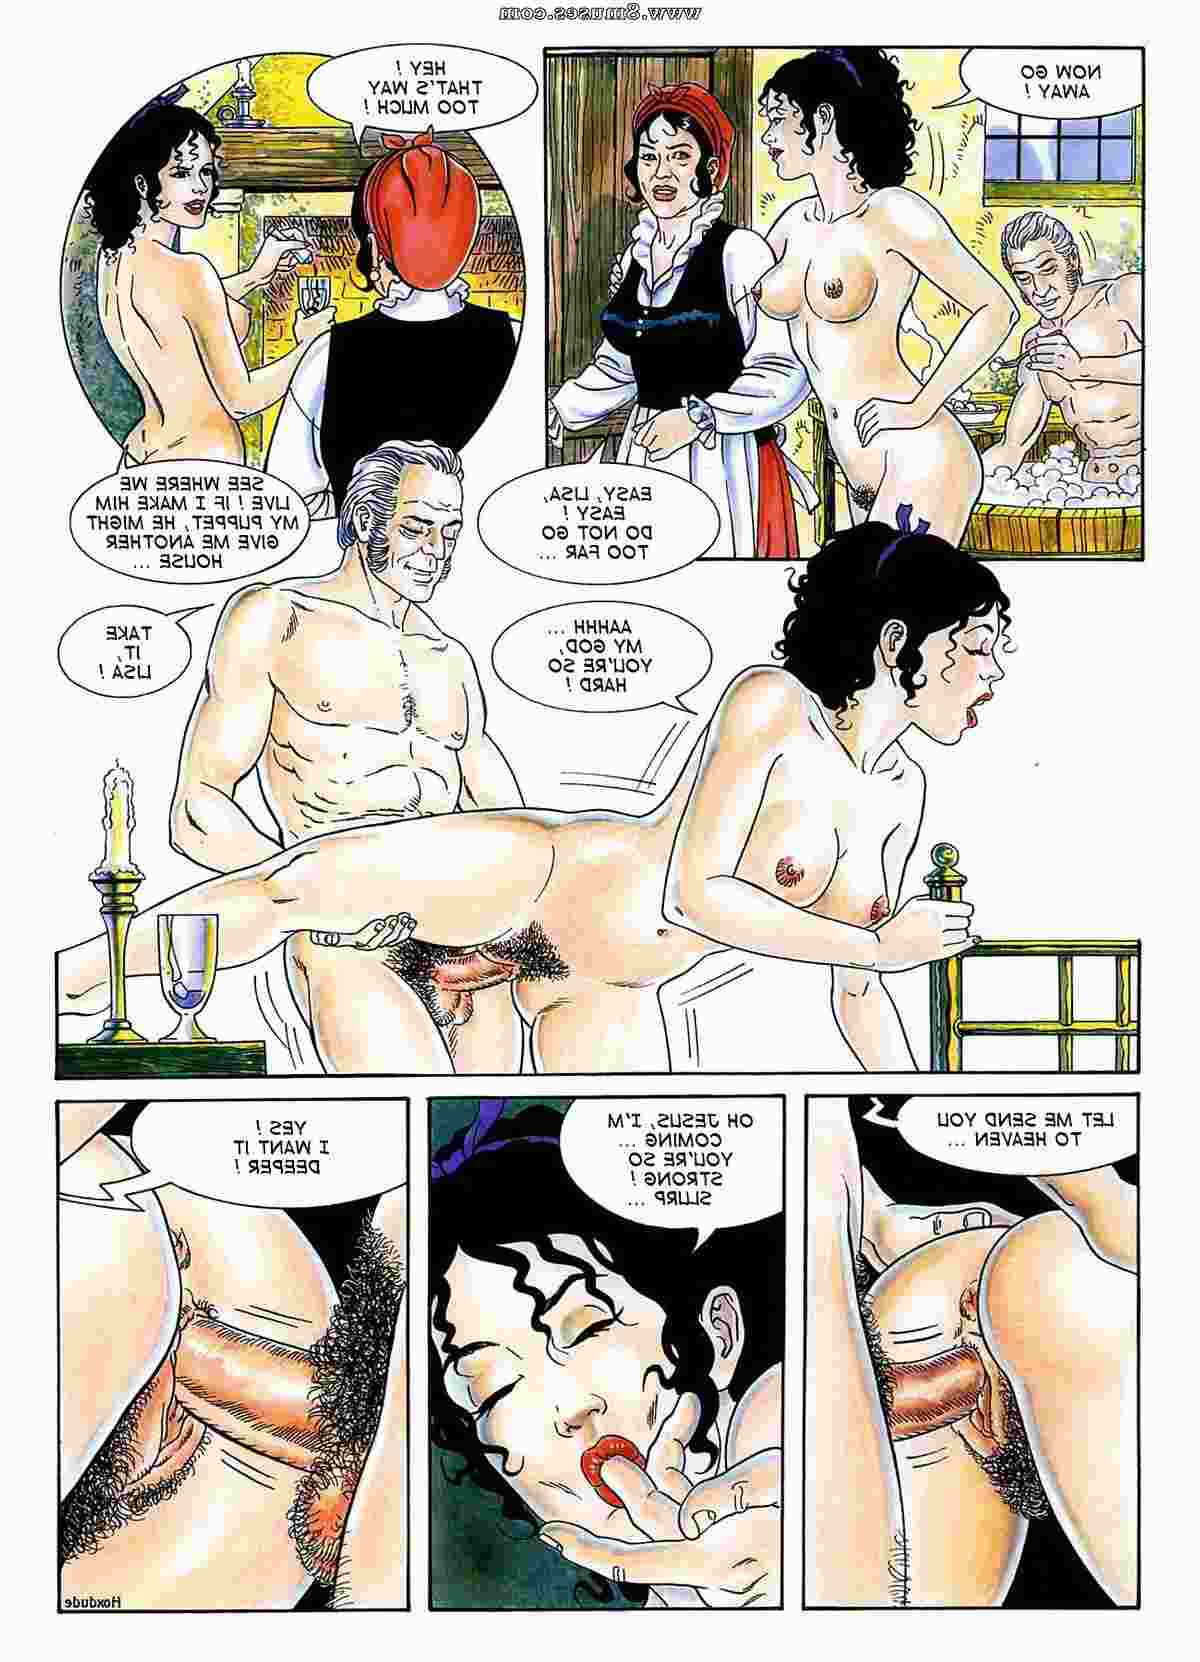 Stramaglia-Morale-Comics/Lisa-Fatal-Beauty Lisa_Fatal_Beauty__8muses_-_Sex_and_Porn_Comics_44.jpg